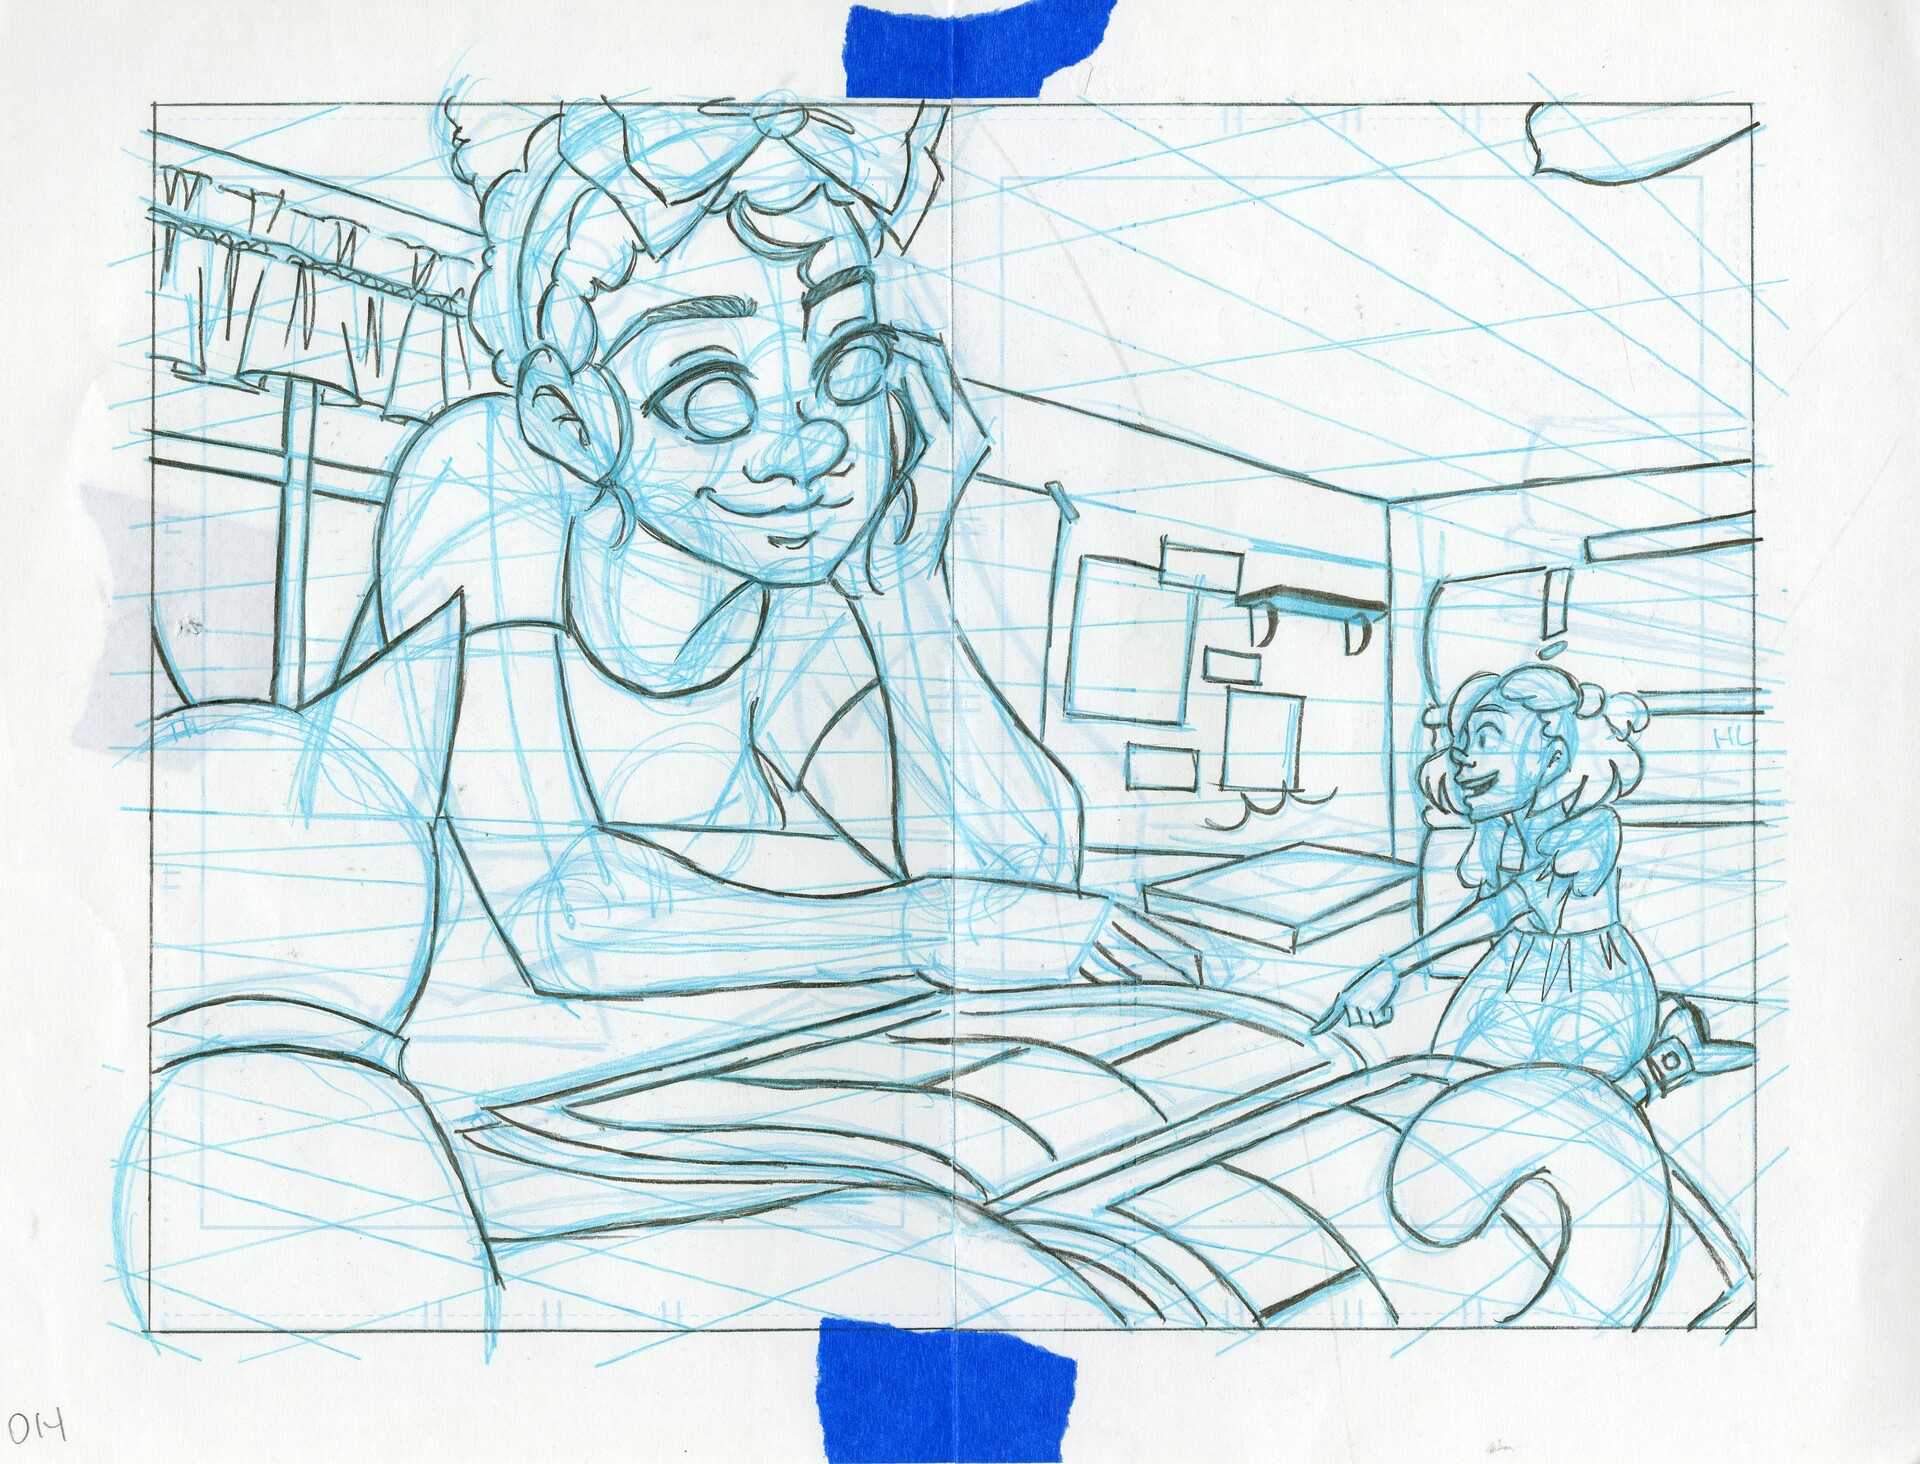 Roughs- Double Page Spread 14&15